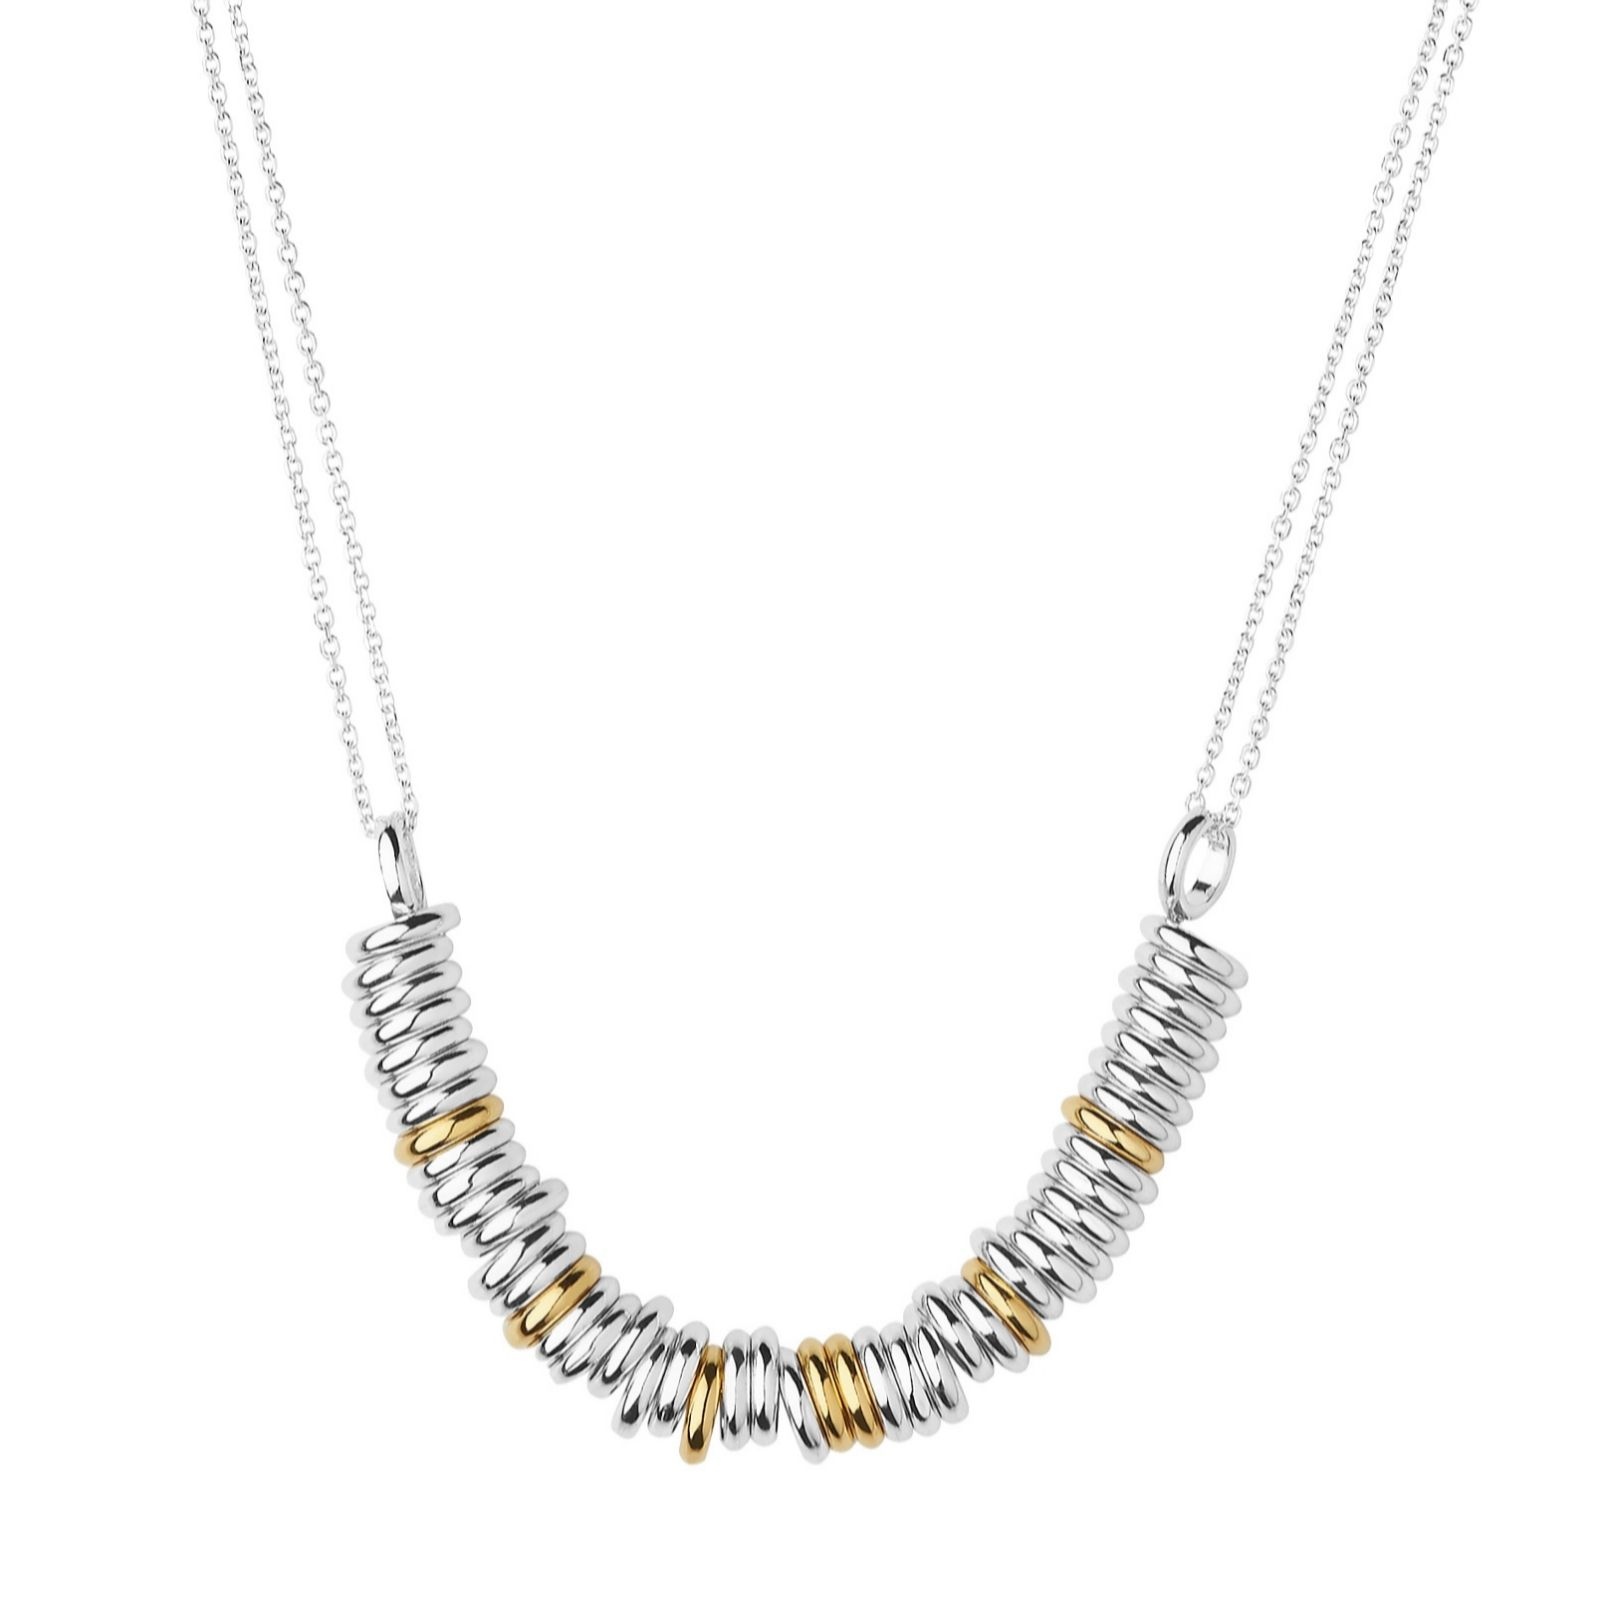 Links of London Essentials Sterling Silver Beaded Necklace of Length 39-45cm 586buVBqVY